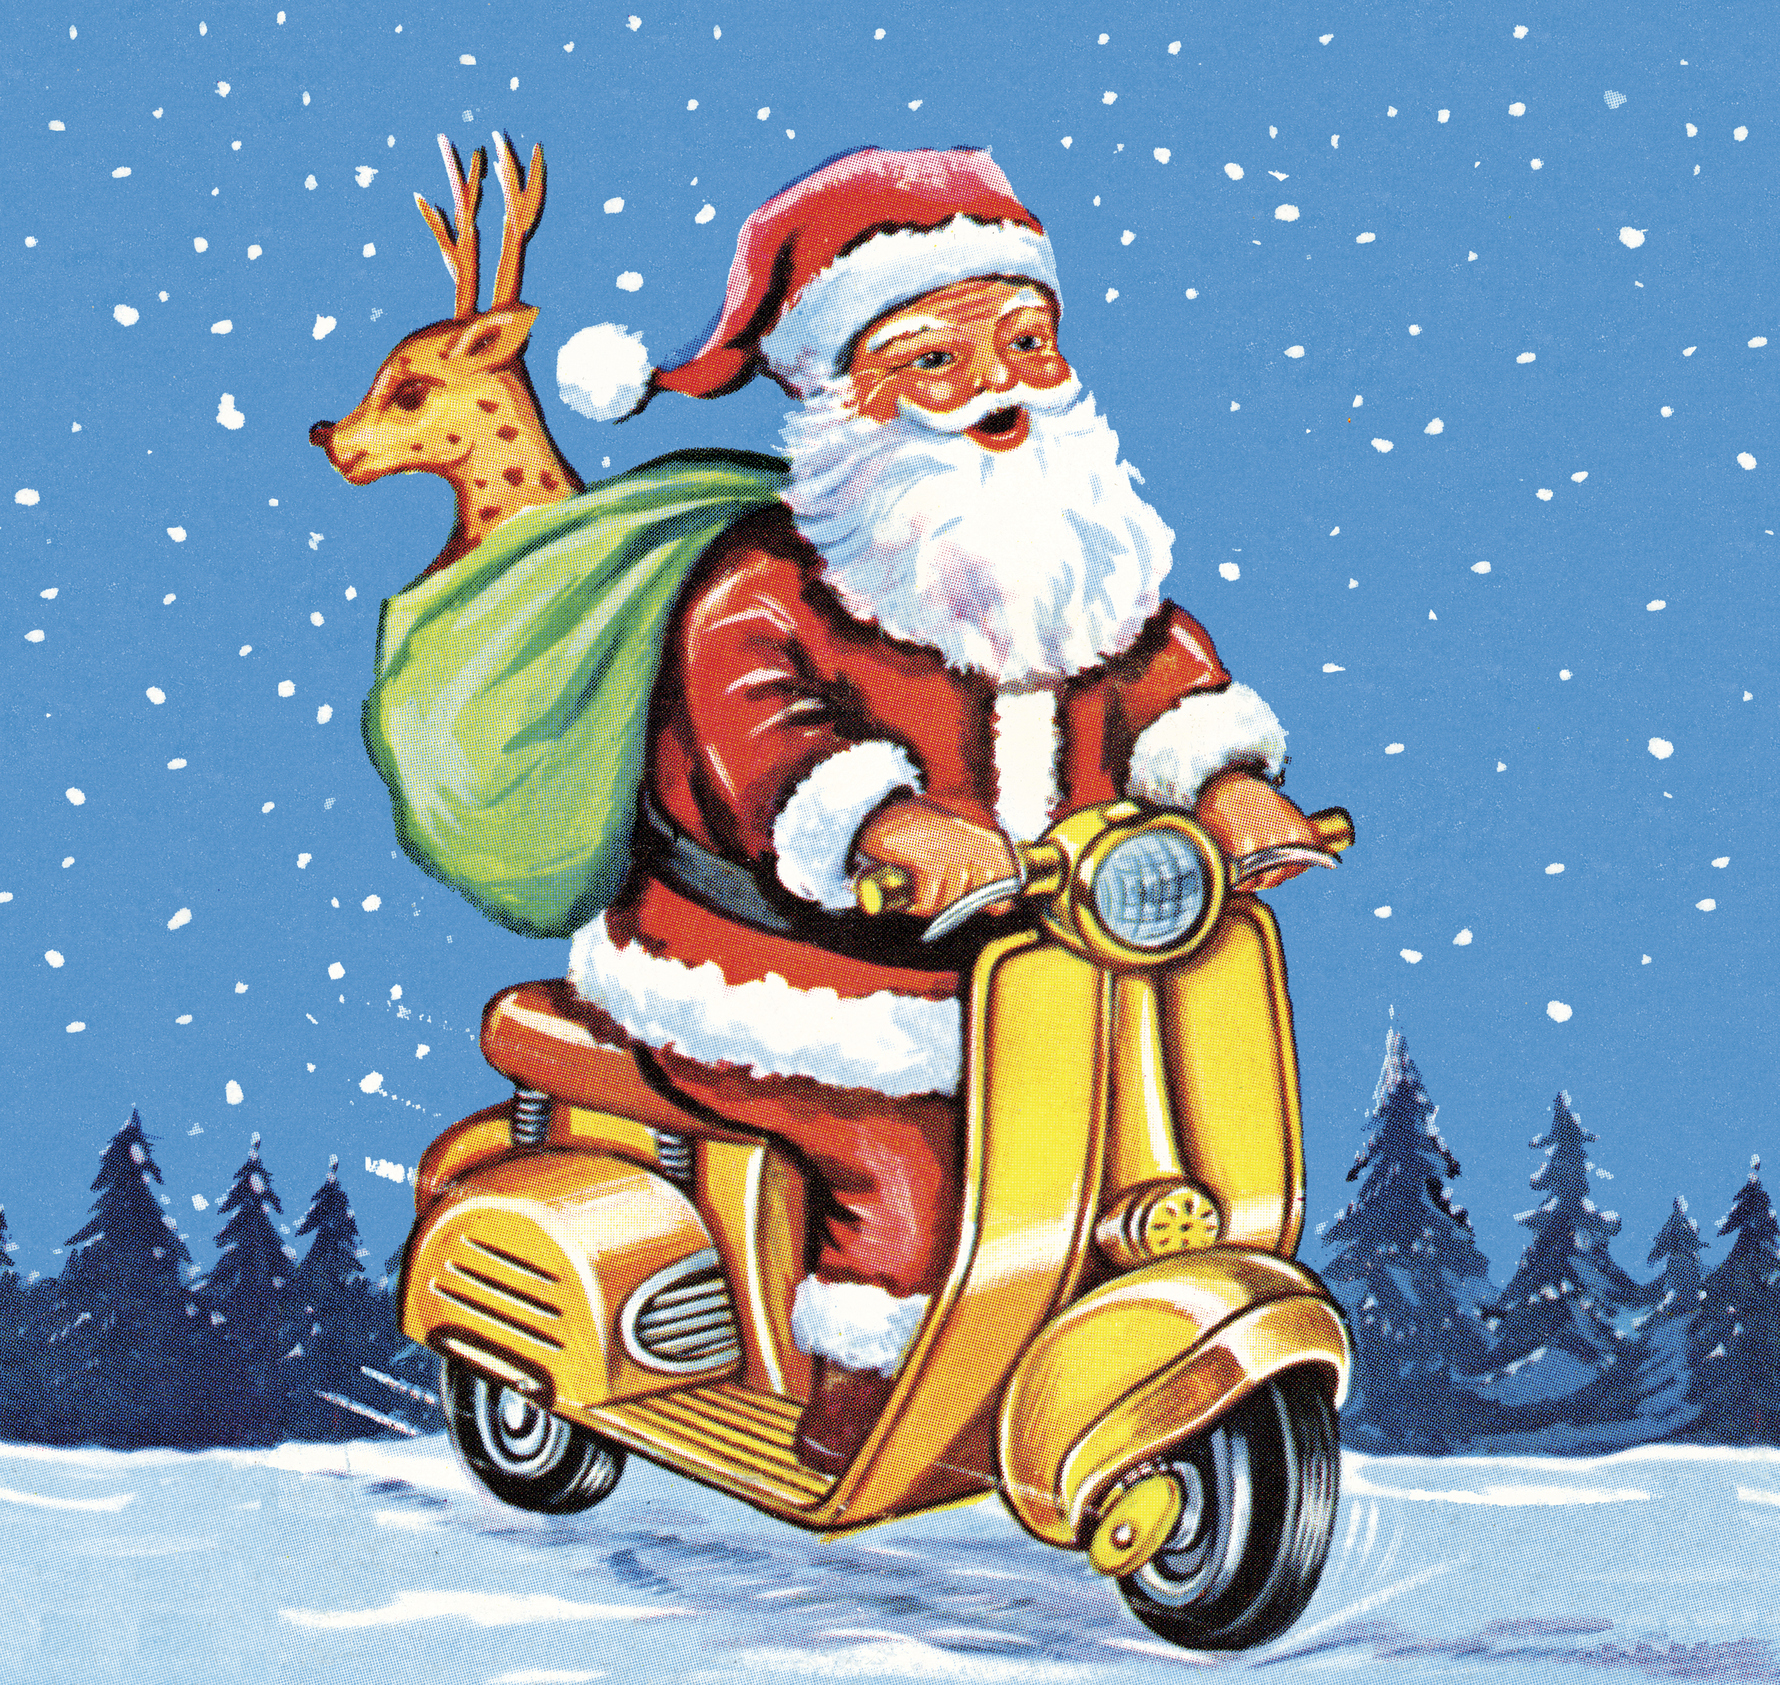 Santa Claus on Motorized Scooter